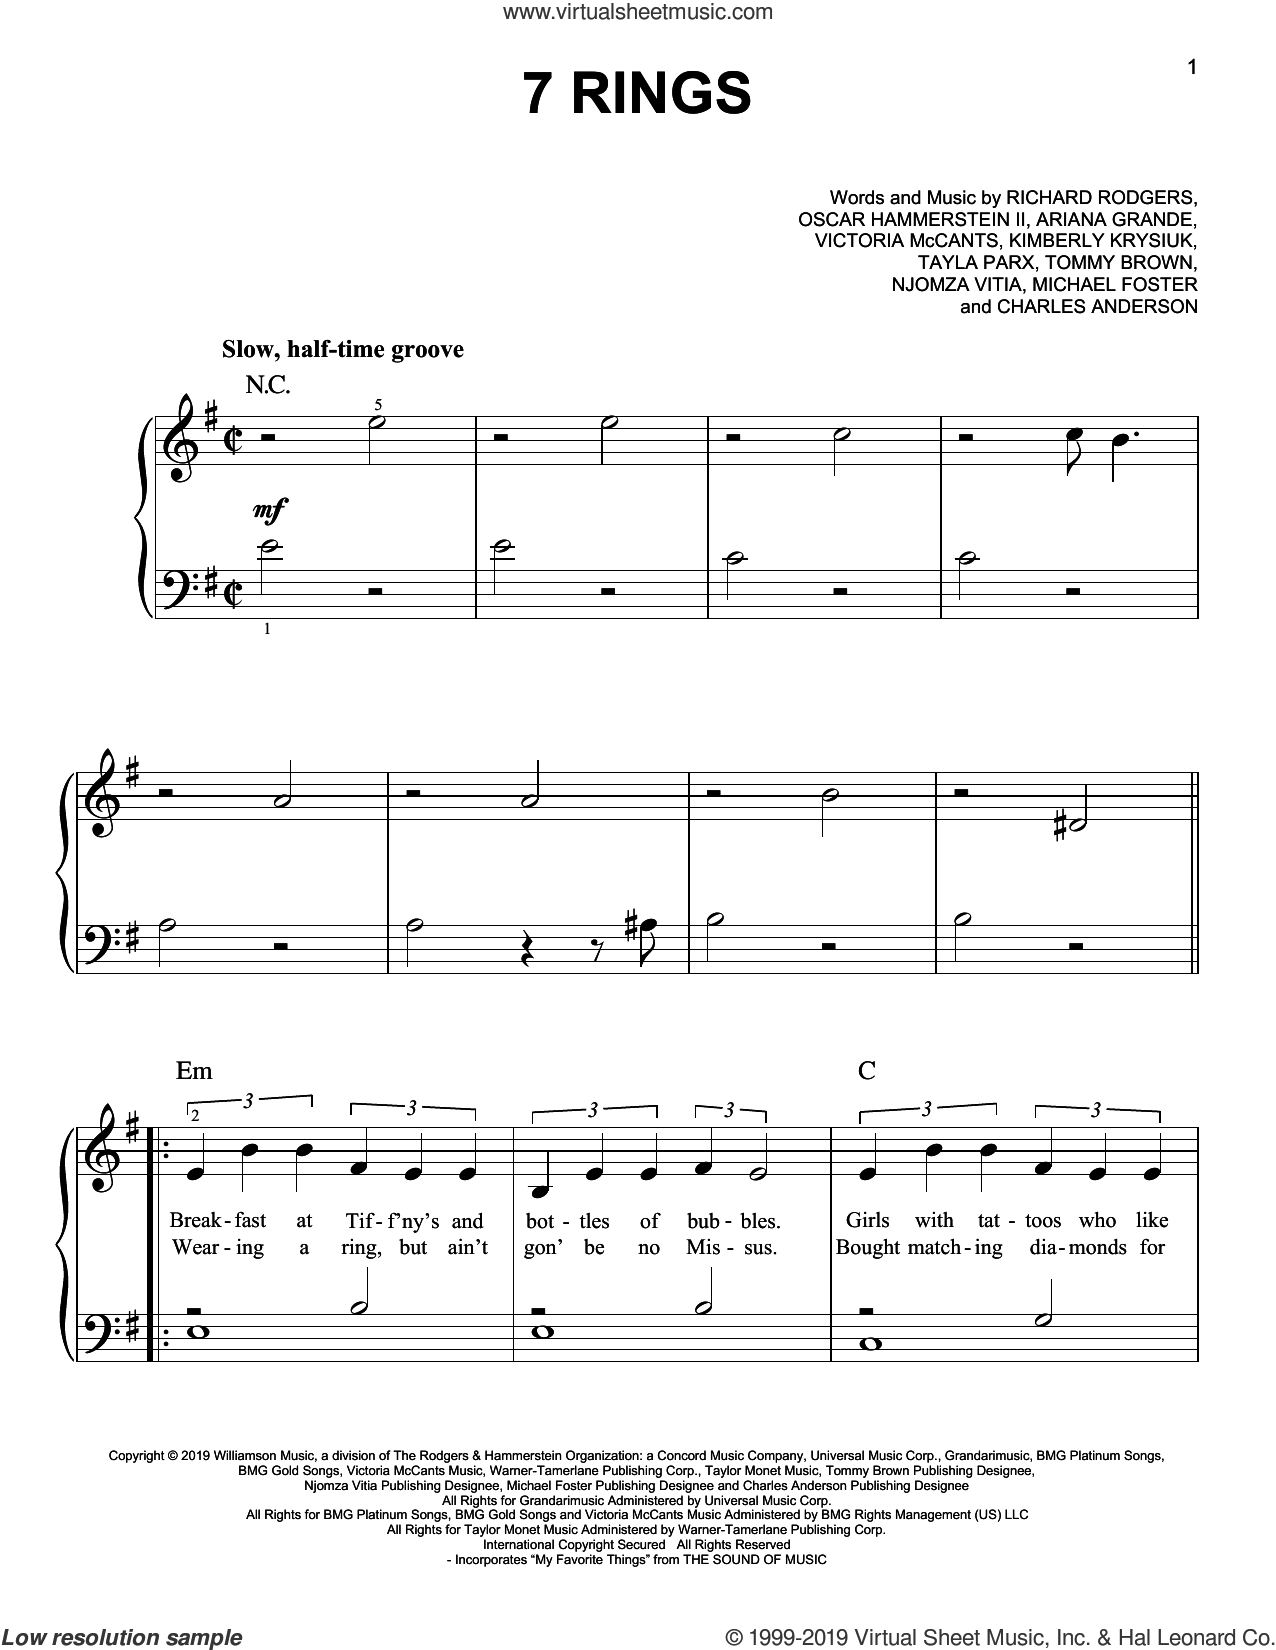 7 Rings sheet music for piano solo by Ariana Grande, Charles Anderson, Kimberly Krysiuk, Michael Foster, Njomza Vitia, Oscar II Hammerstein, Richard Rodgers, Tayla Parx, Tommy Brown and Victoria McCants, easy skill level